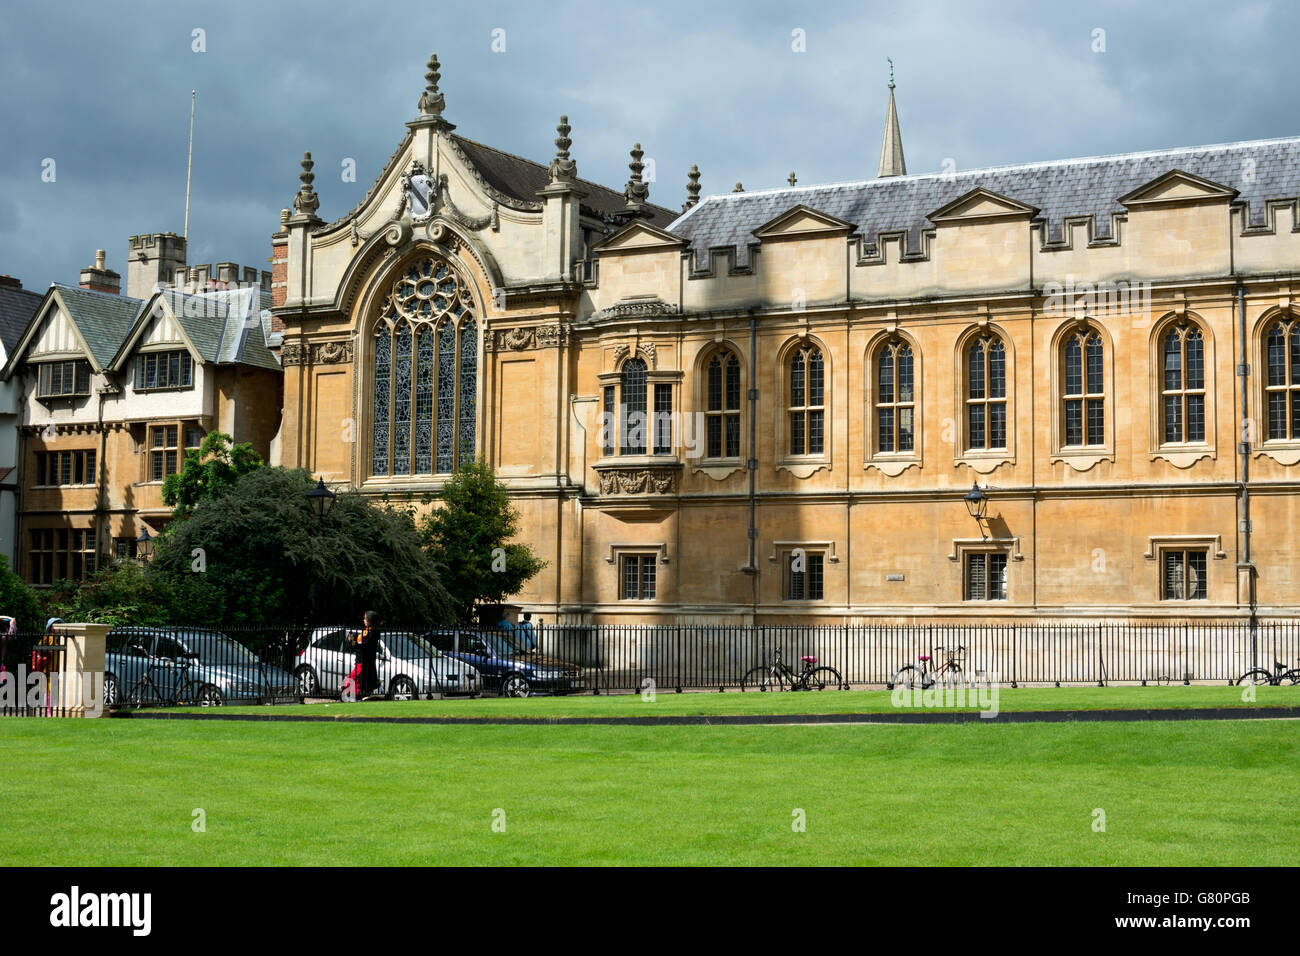 Brasenose College from Radcliffe Square, Oxford, UK - Stock Image